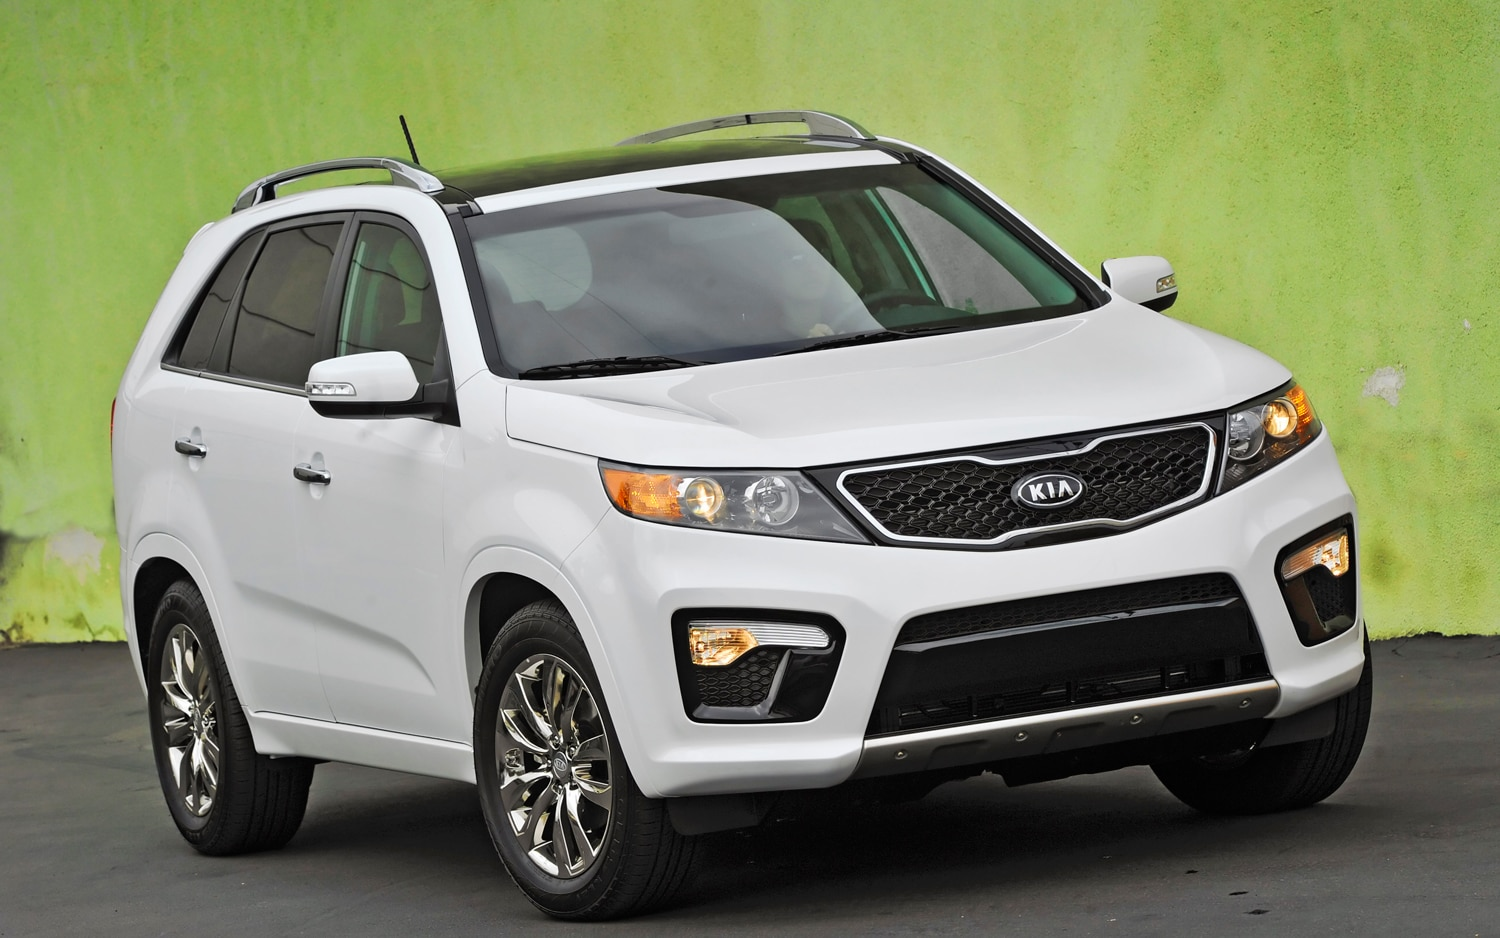 2012 Kia Sorento Front Right View